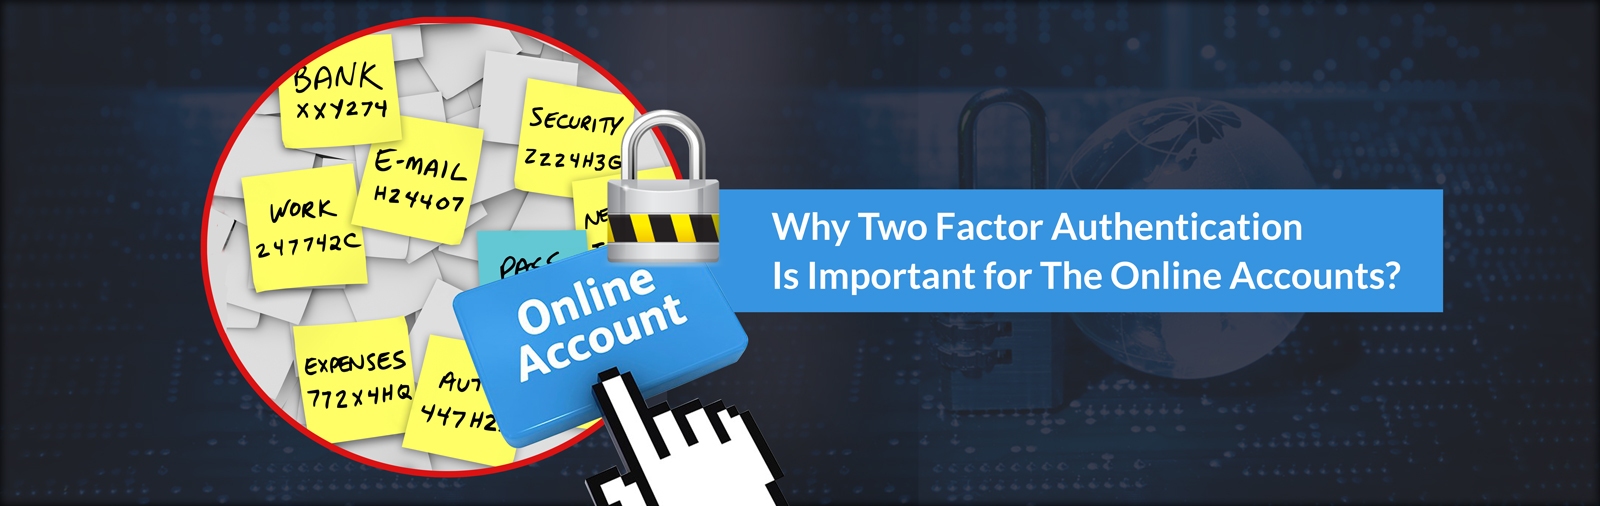 Why Two Factor Authentication Is Important for The Online Accounts